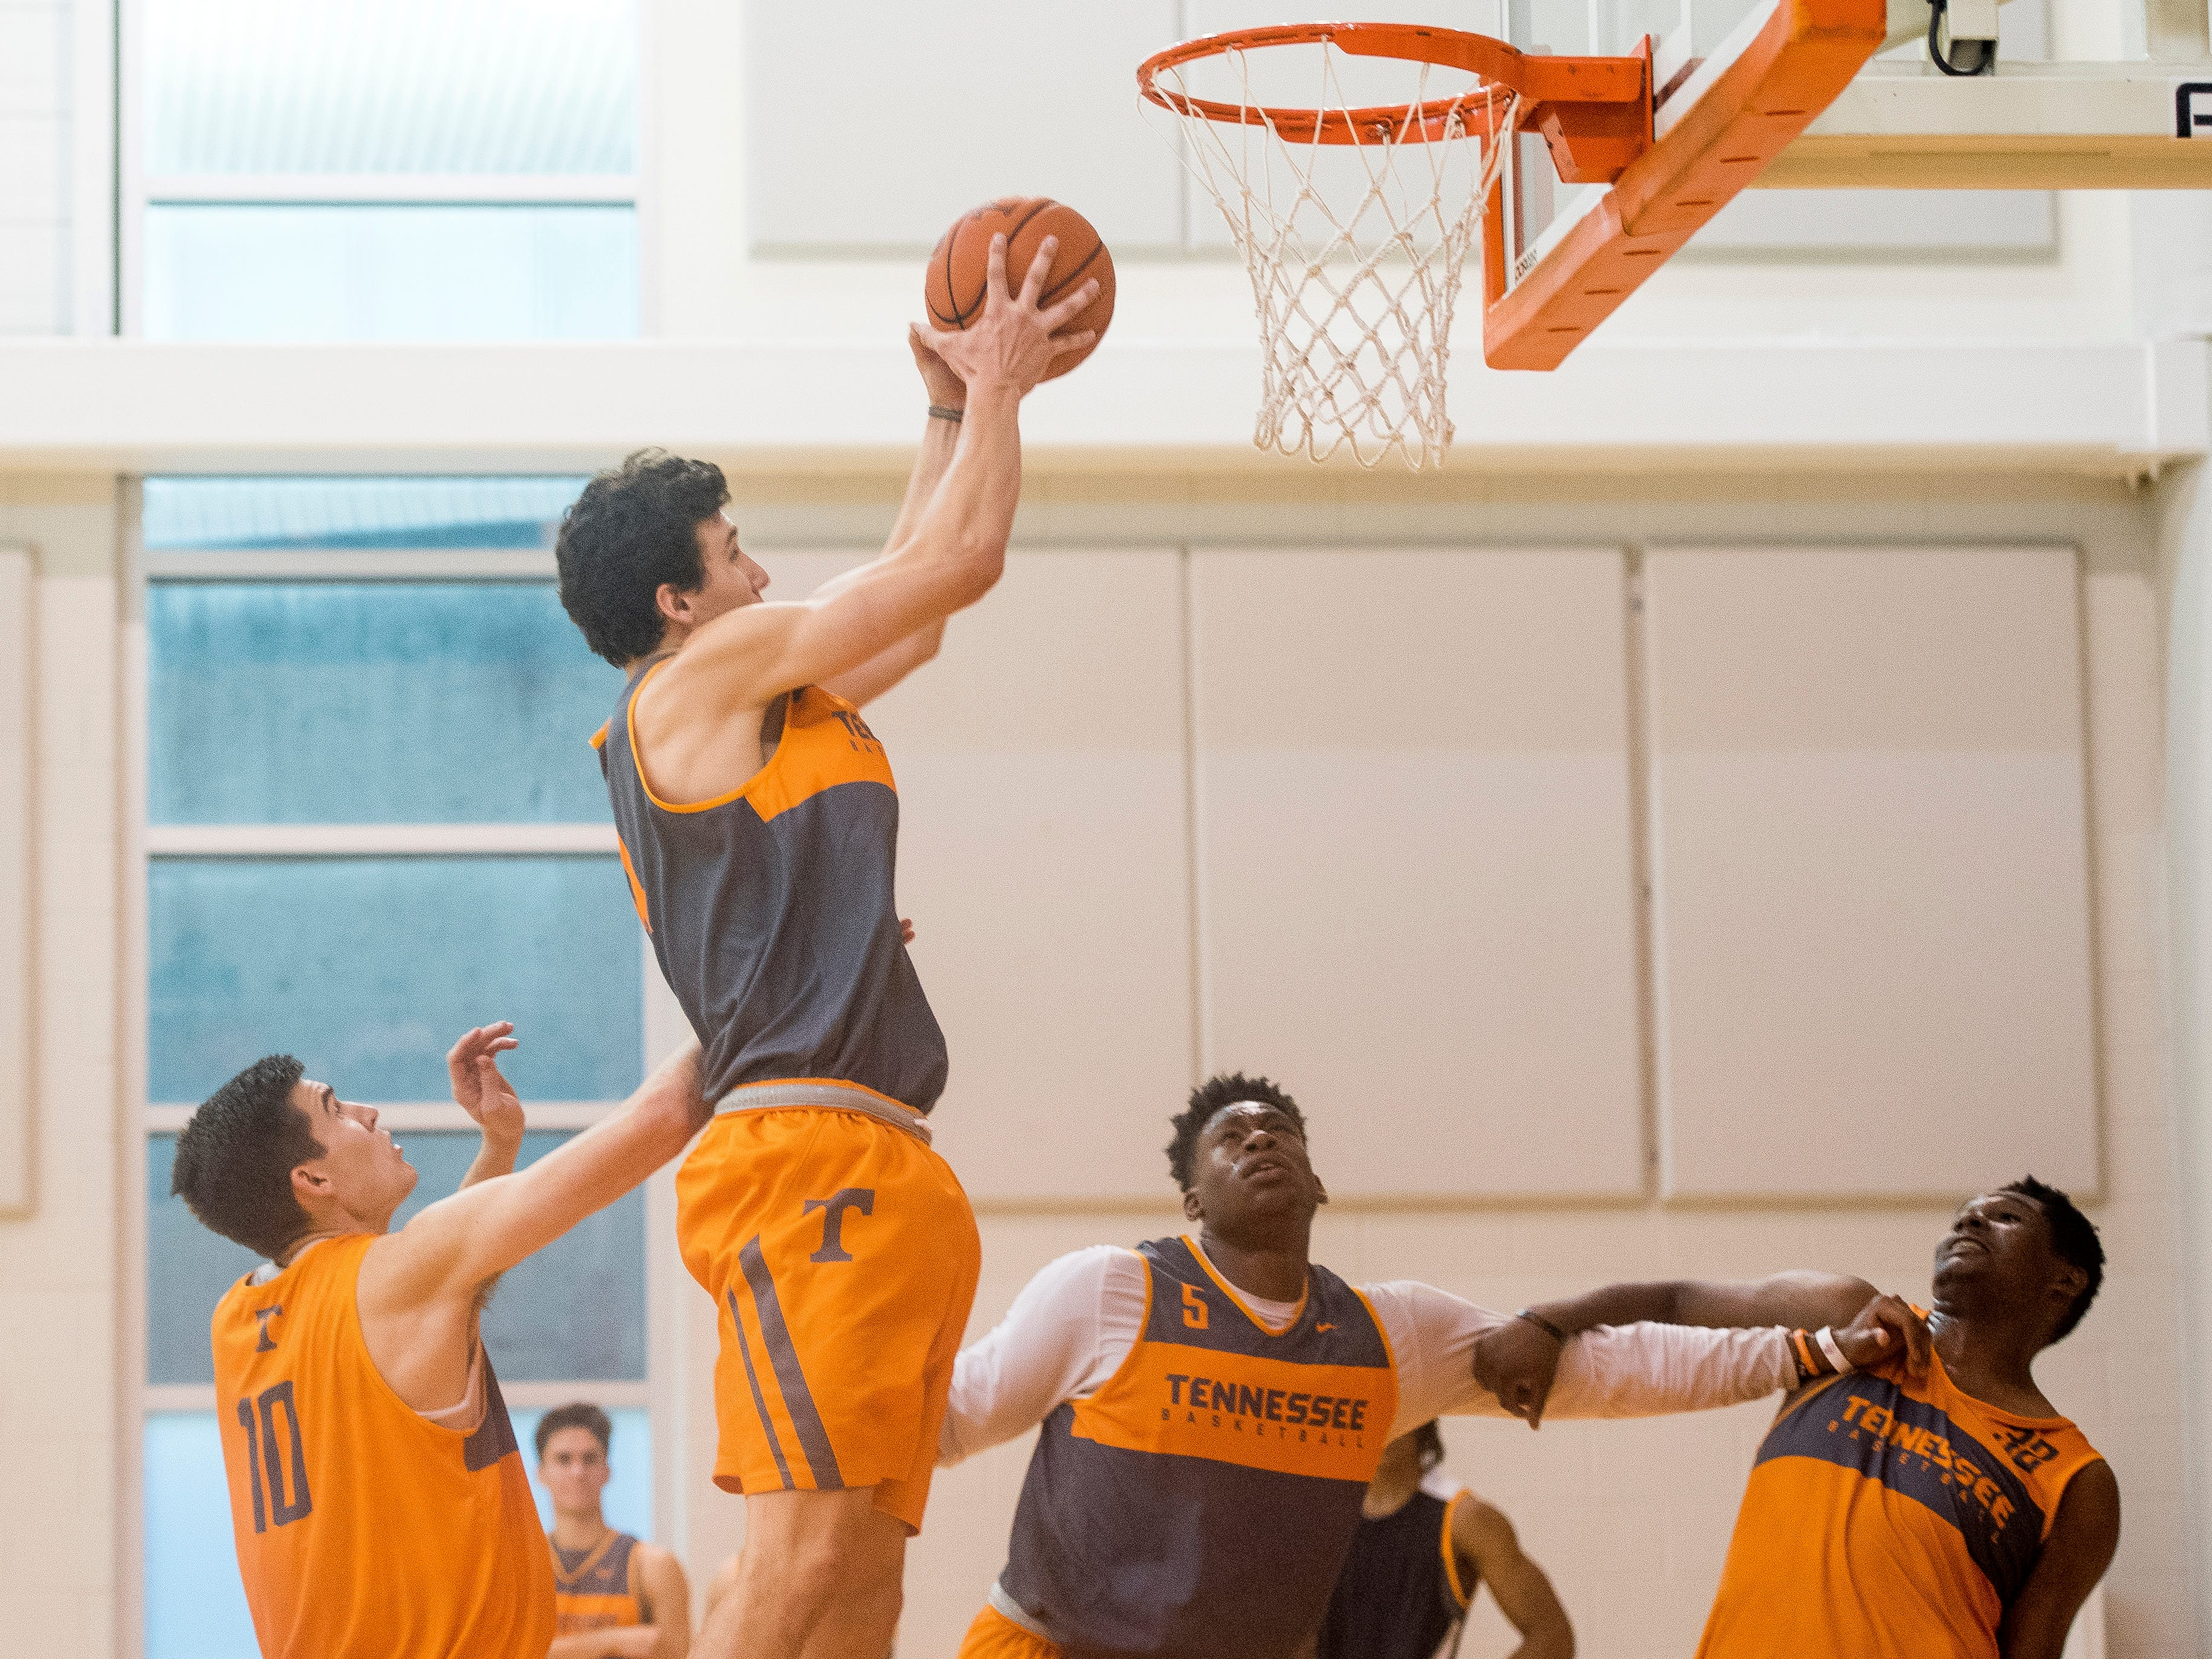 Tennessee forward Brock Jancek (34) grabs the rebound during basketball practice at Pratt Pavilion on the University of Tennessee's campus on Thursday, October 4, 2018.